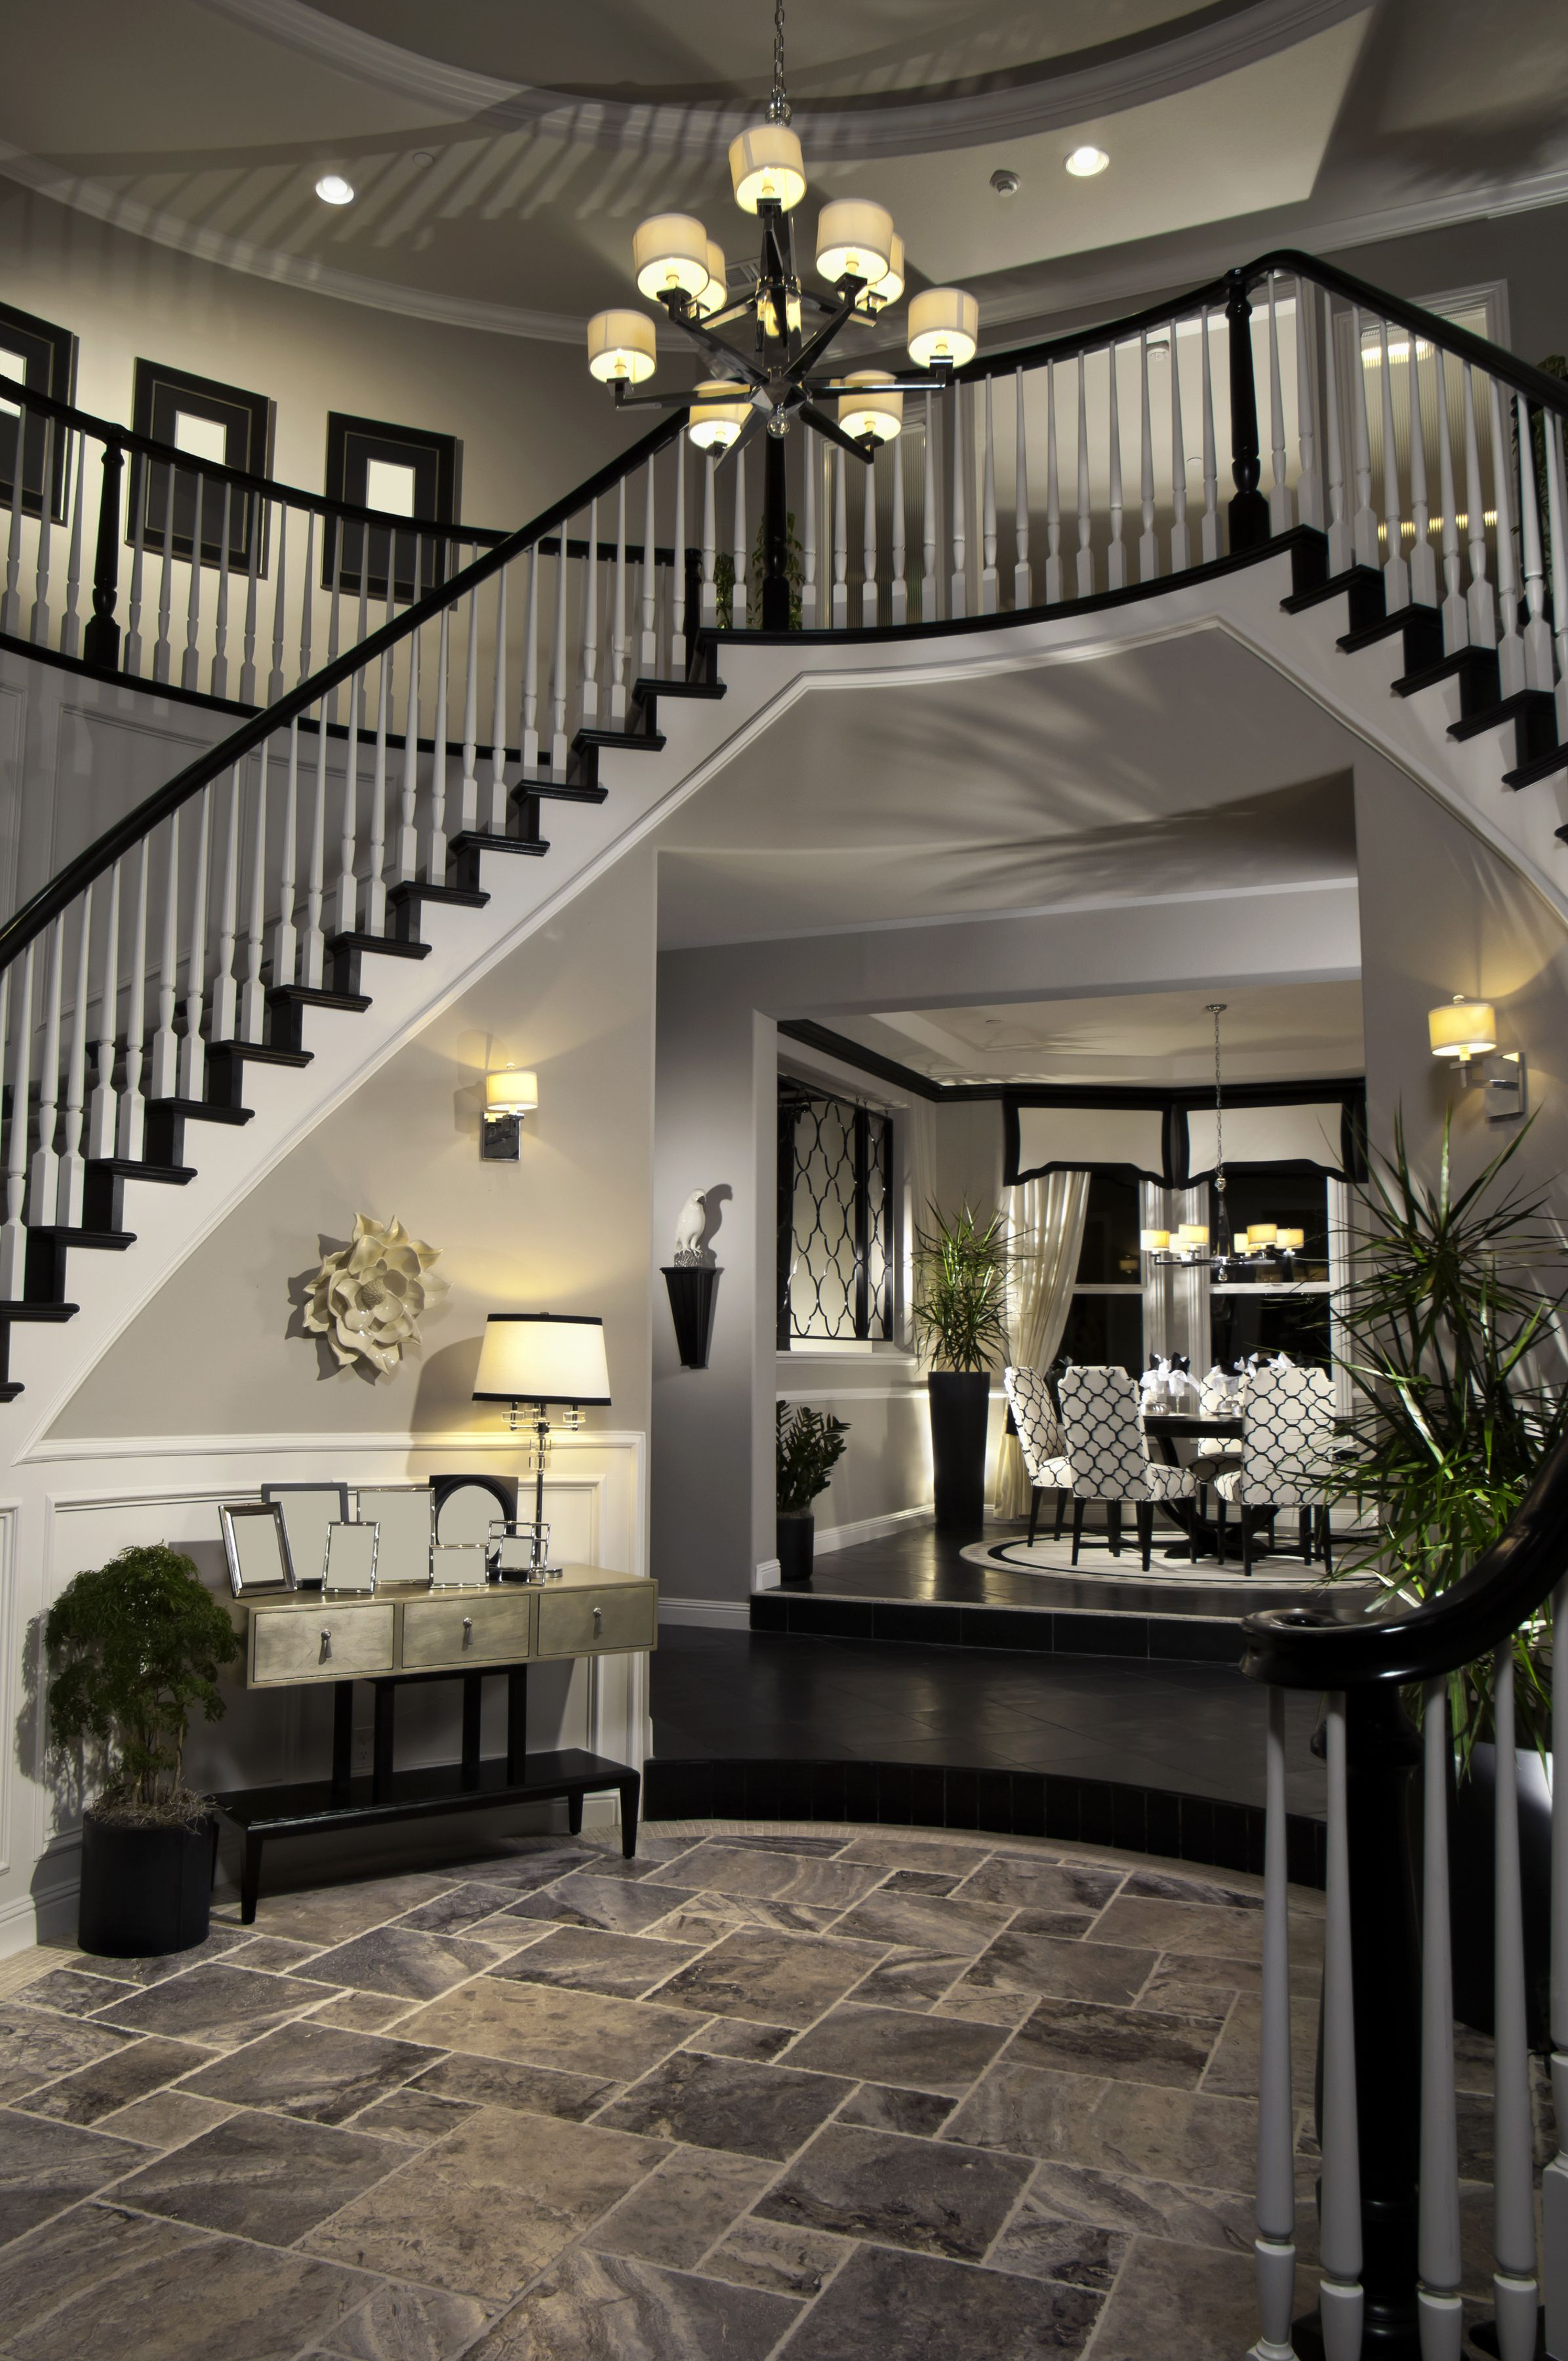 Double Arched Stairs Descending Down The Round Foyer Creating A Two Story Entrance Way Floor Is Grey Tile Foyer Leads Up A L Foyer Design Dream House House